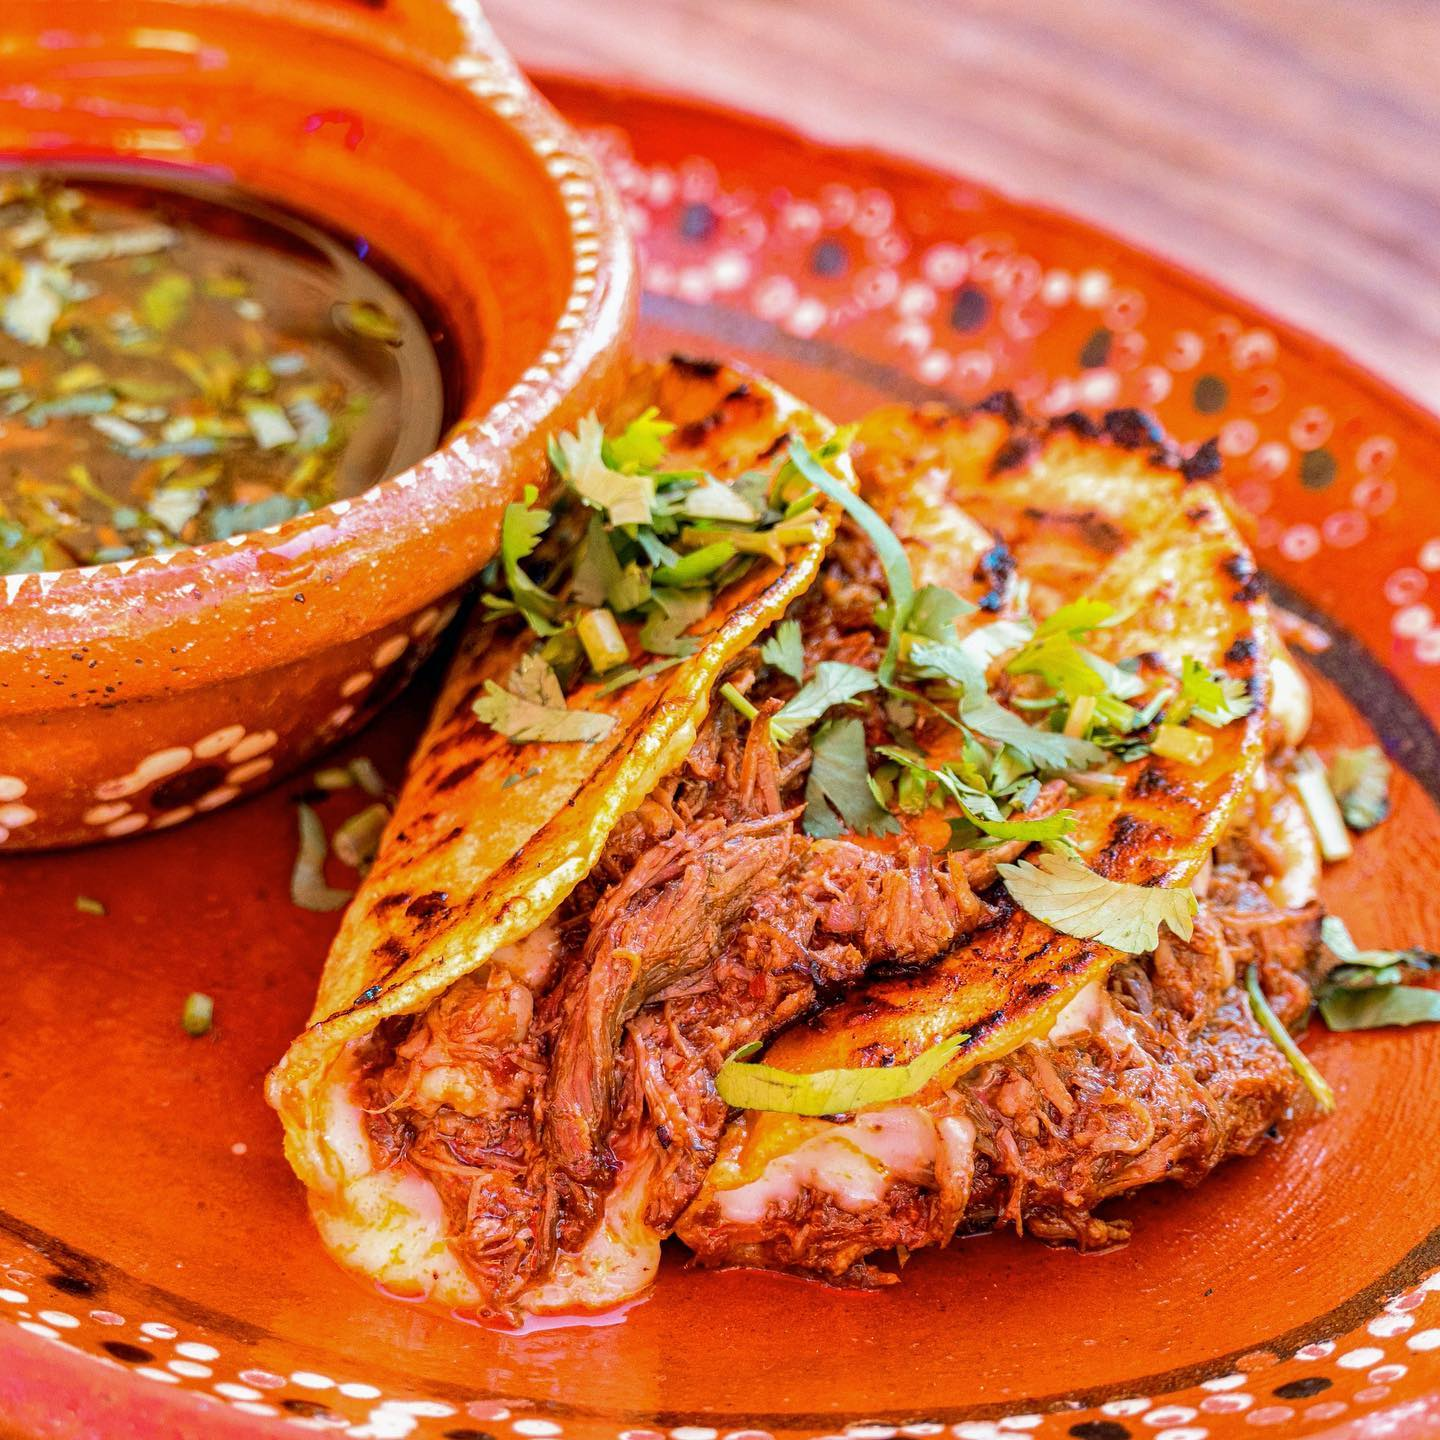 A trio of birria tacos served on an orange plate. A bowl of consomme sits in the background.